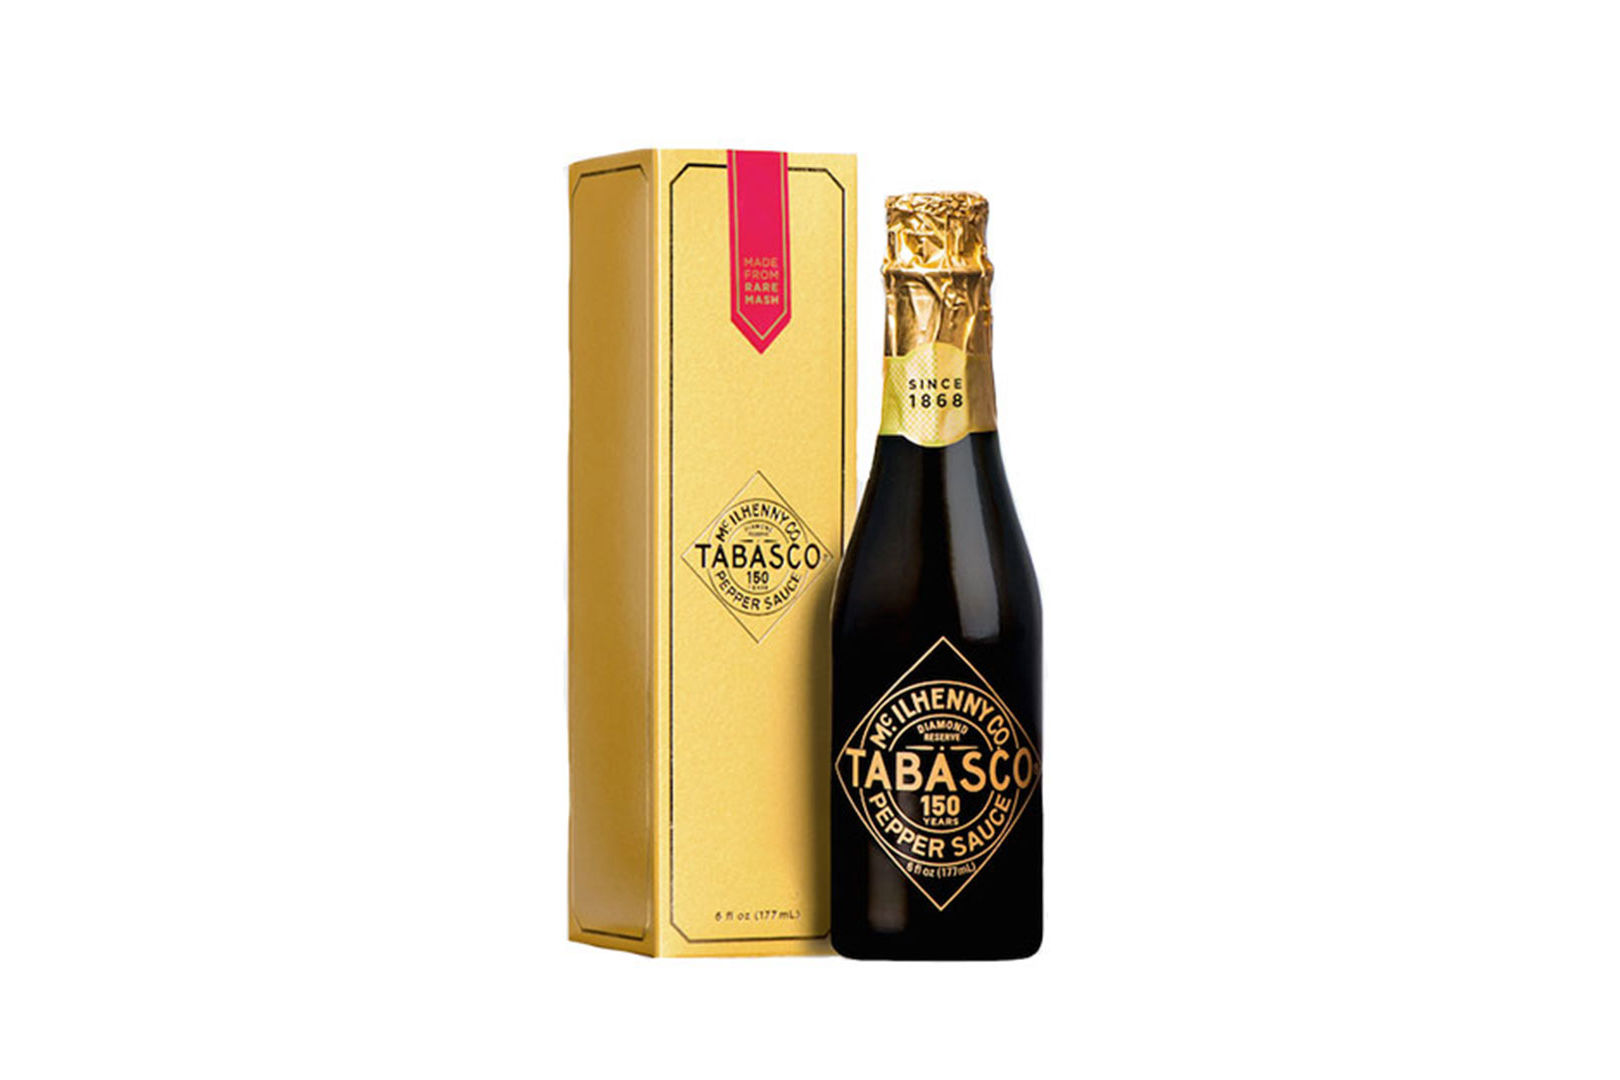 Tabasco Celebrates 150th Anniversary With Limited Edition Diamond Reserve Sauce